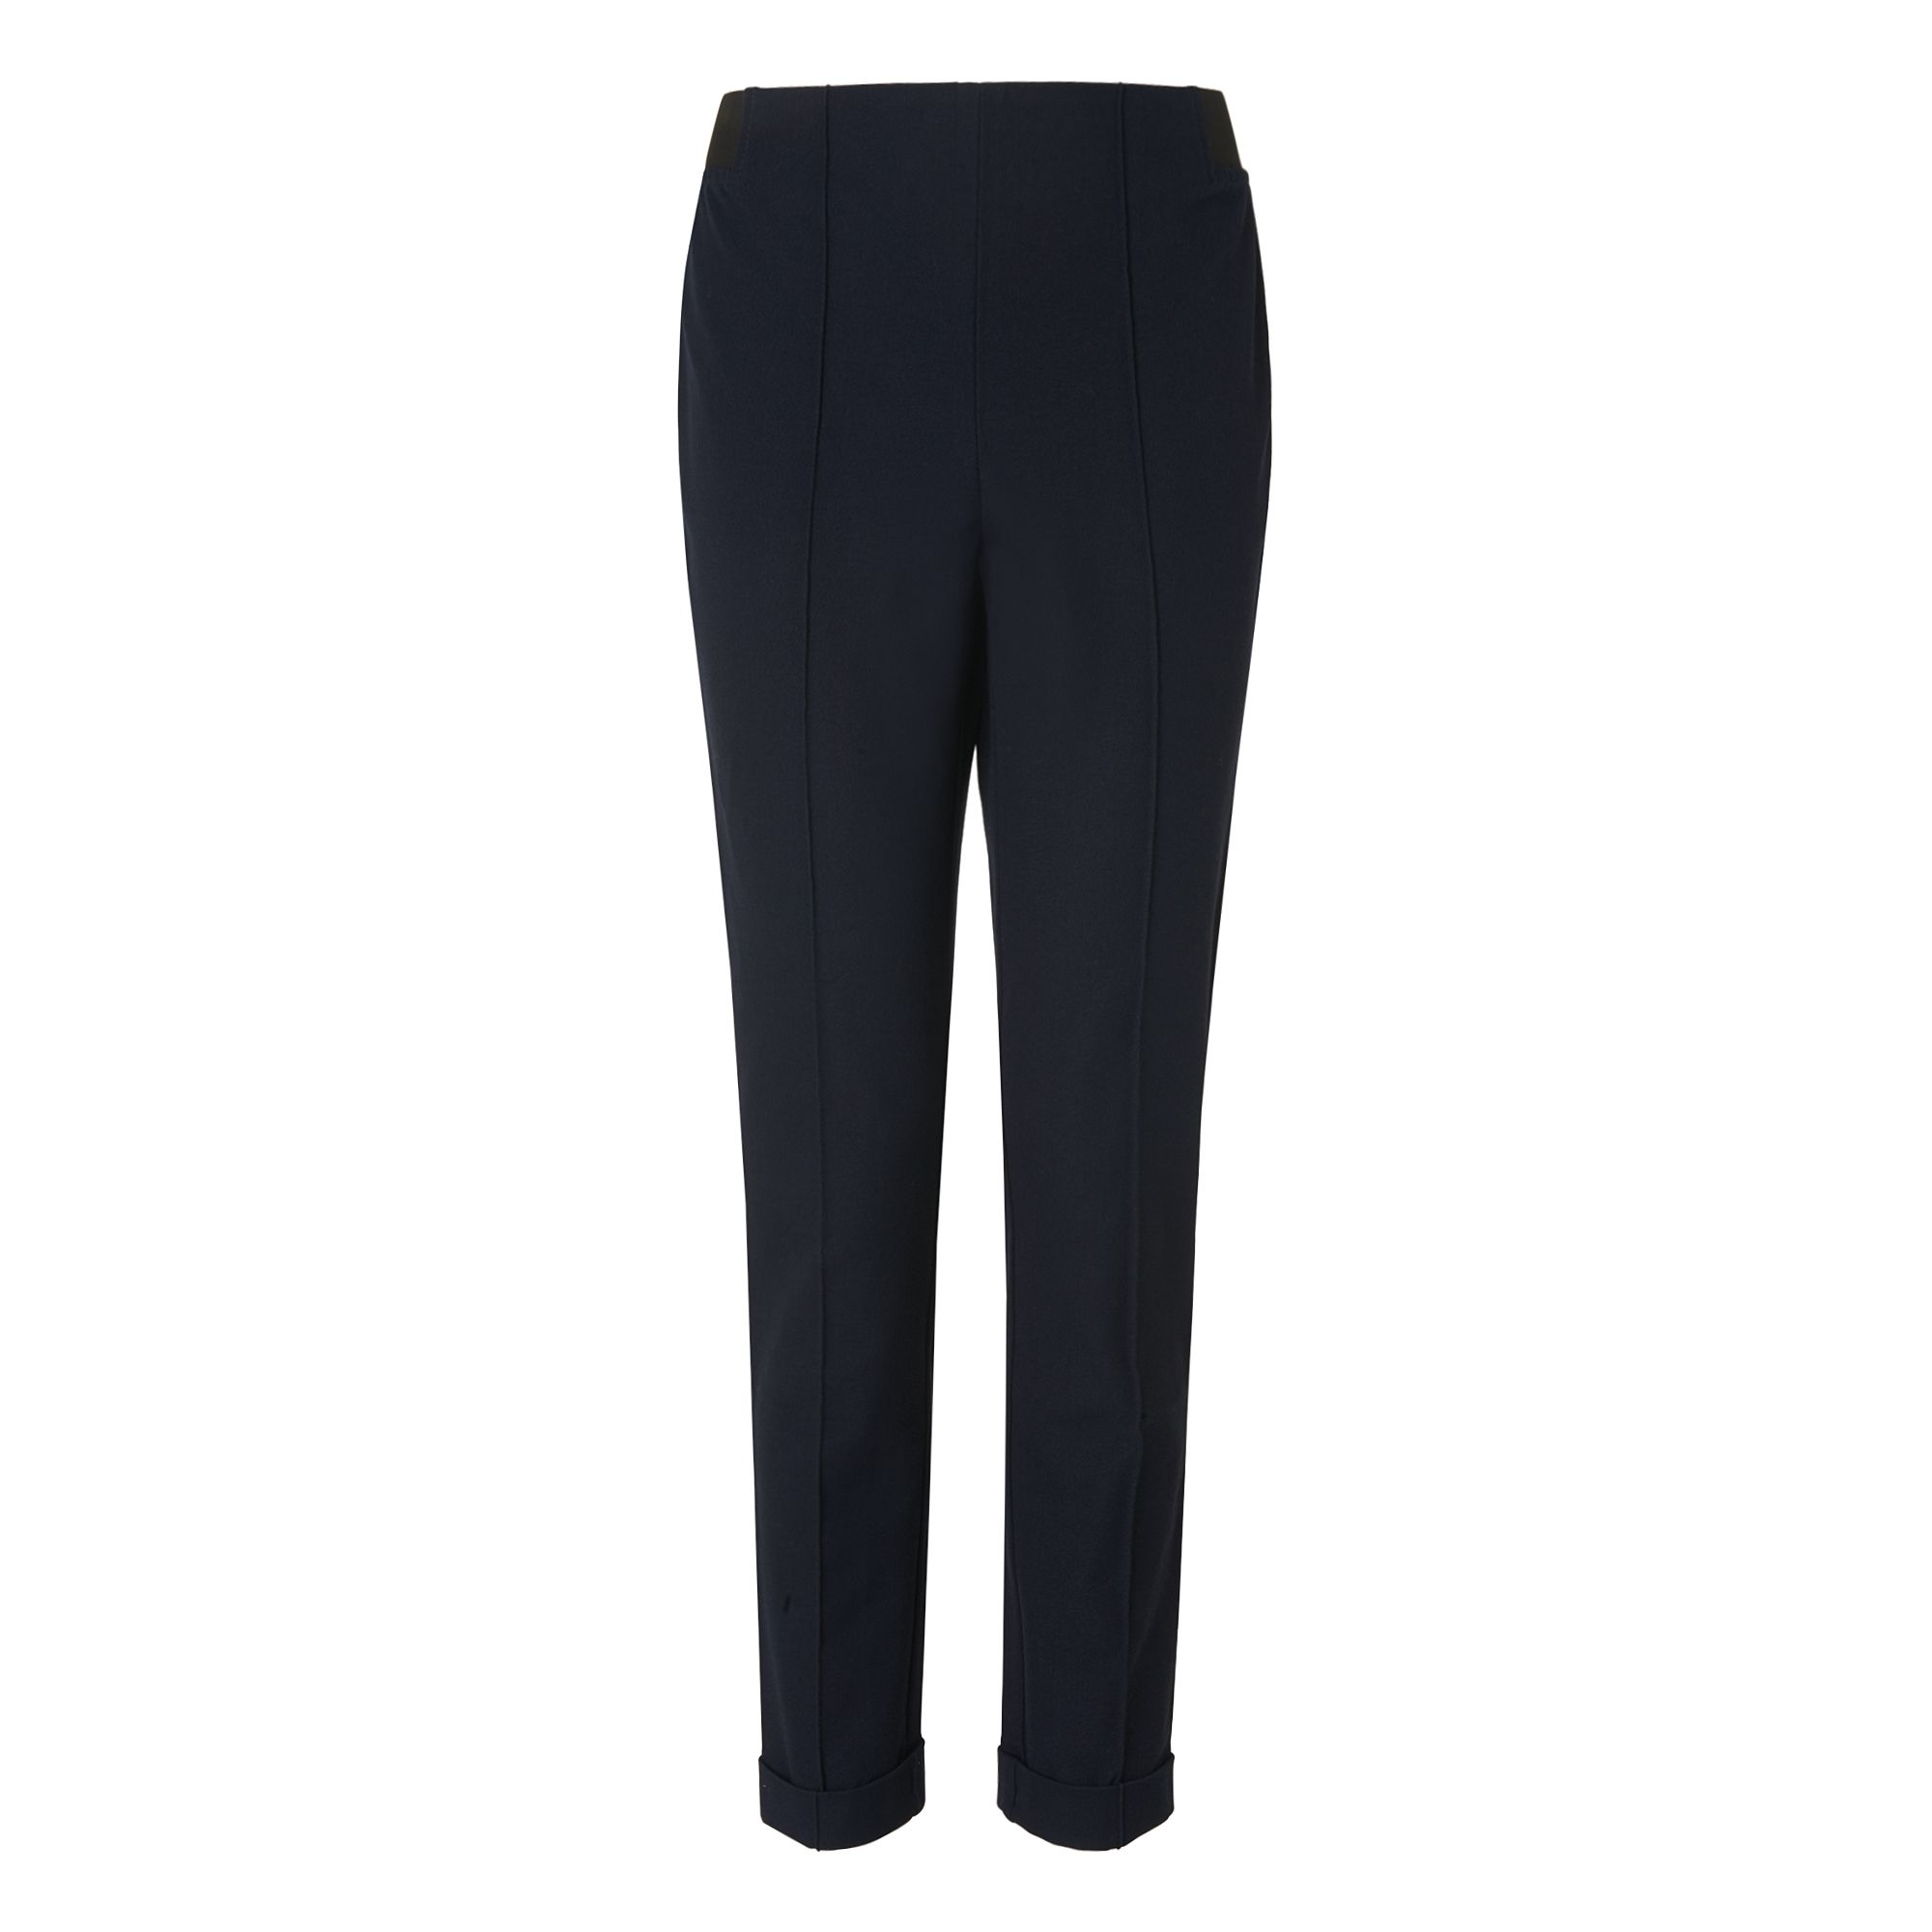 L.K. Bennett Jetta Turn Up Trousers, Blue